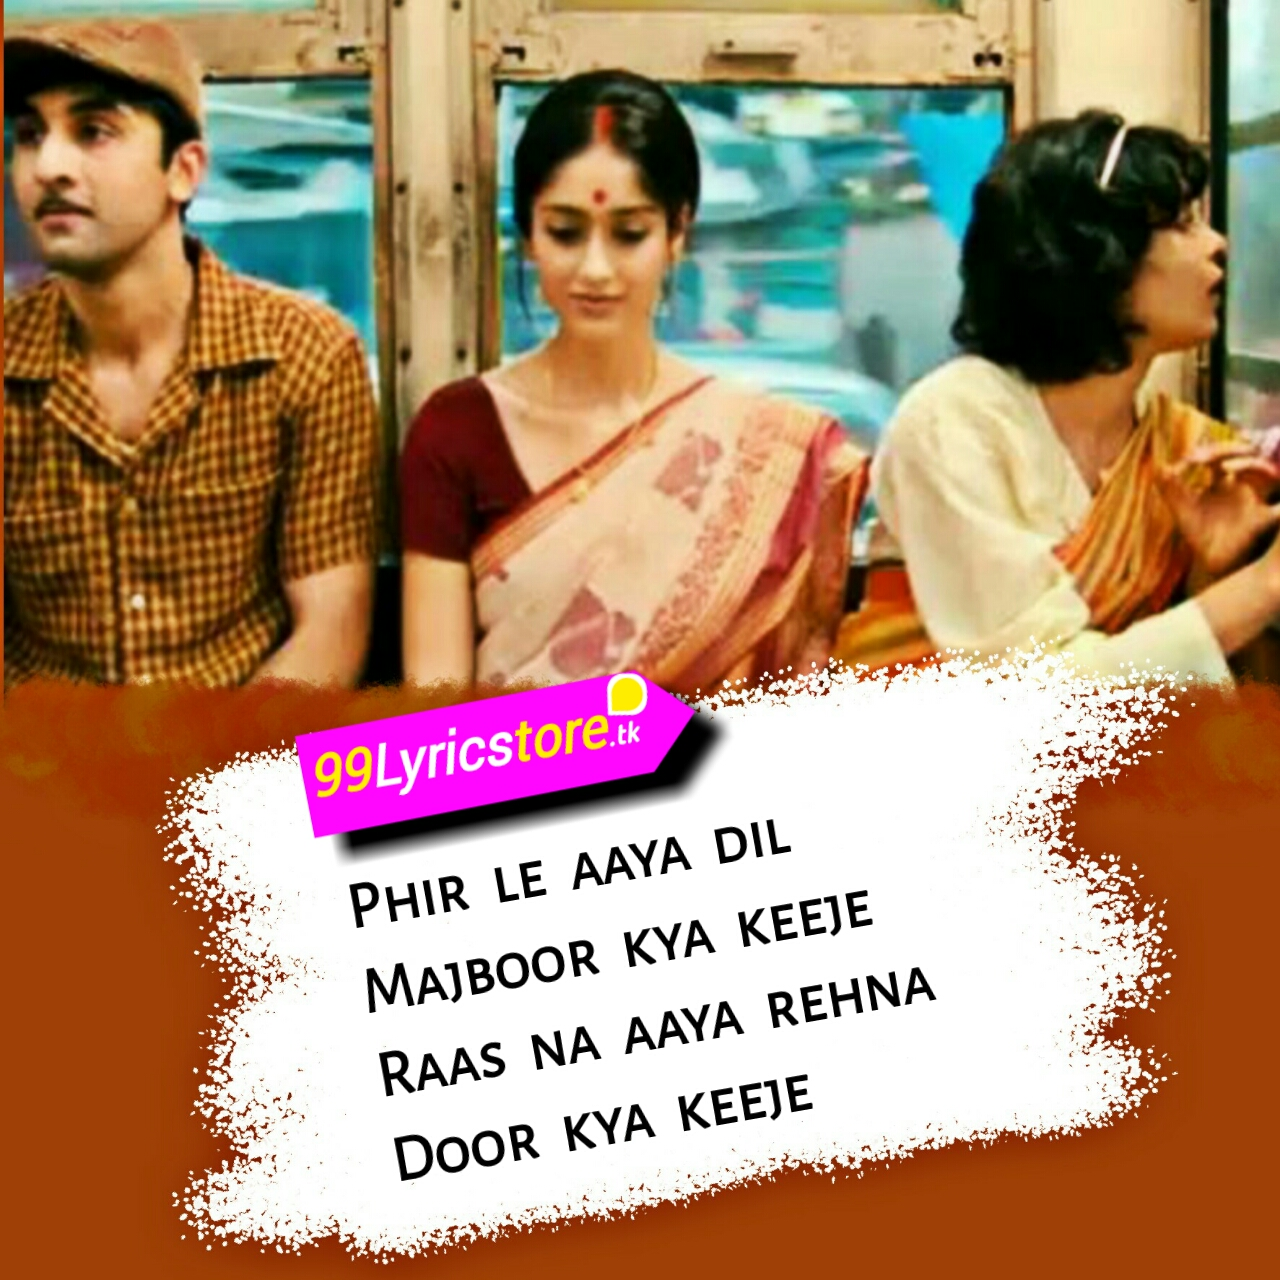 Ranbir Kapoor Song Lyrics, Love Quotes in Hindi, Arijit Singh Song Lyrics, Best Song Lyrics of Arijit Singh, Love, breakup qoutes in Hindi, Hindi Song Lyrics